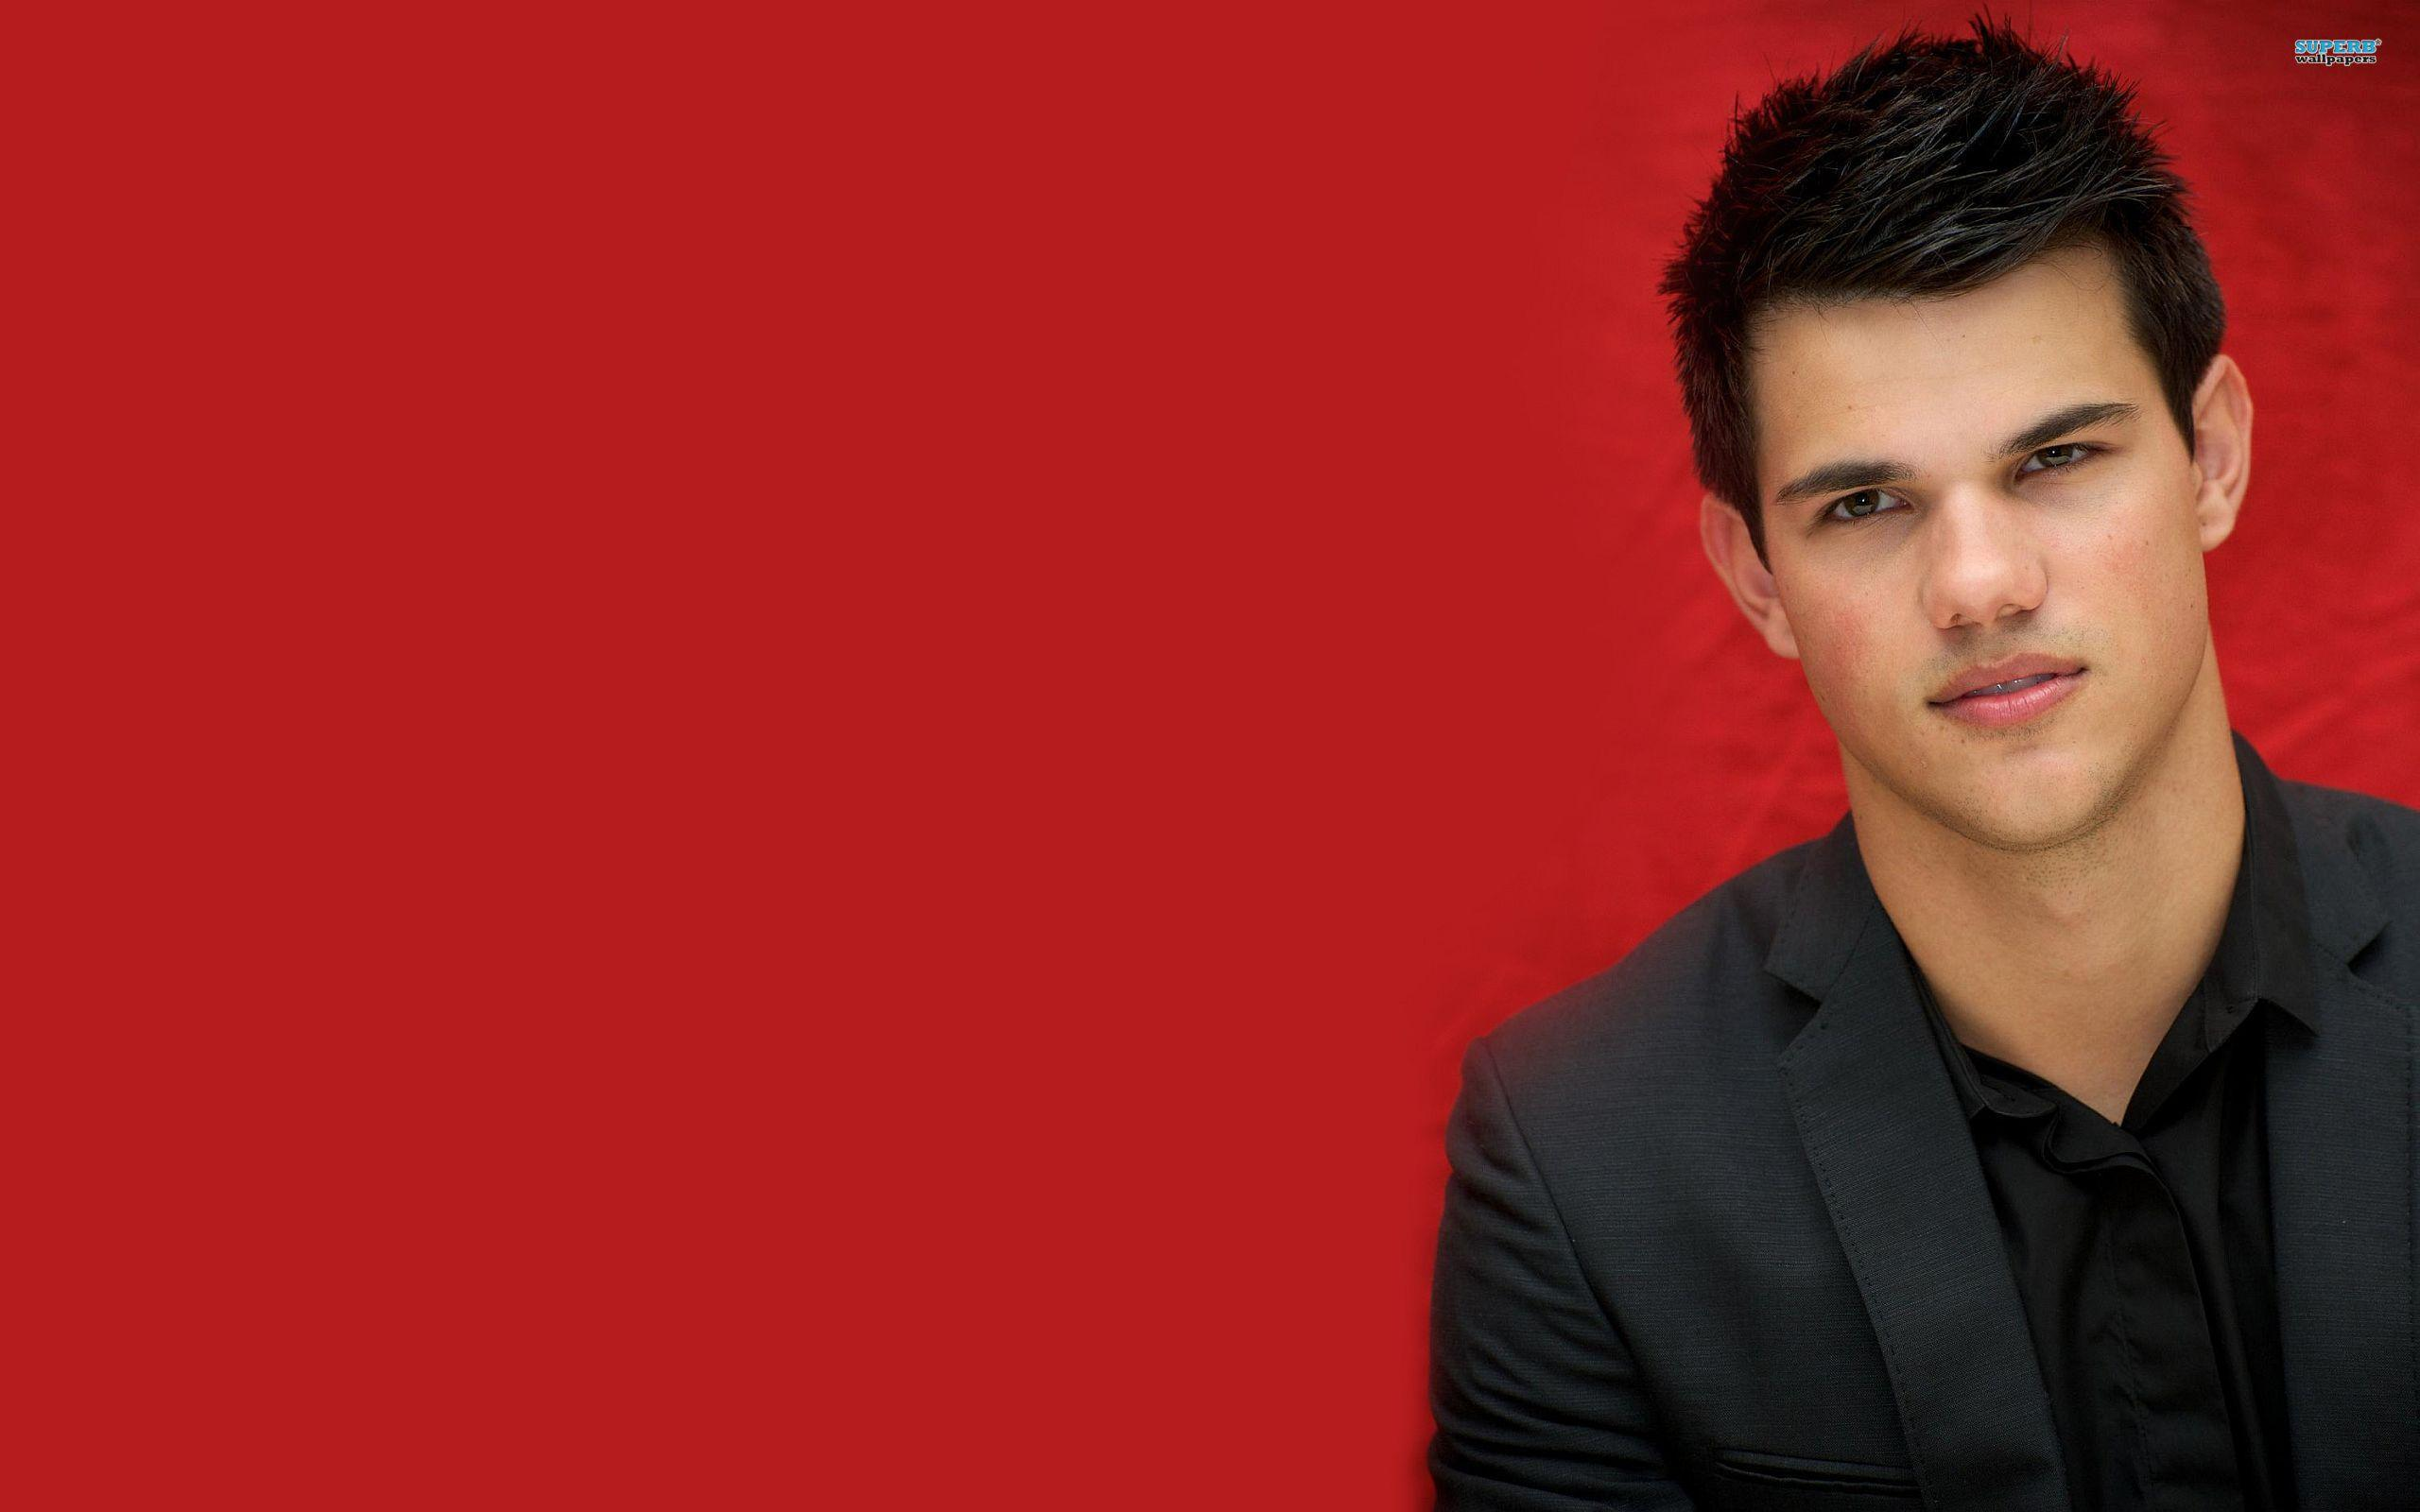 Taylor Lautner Wallpapers For Computer